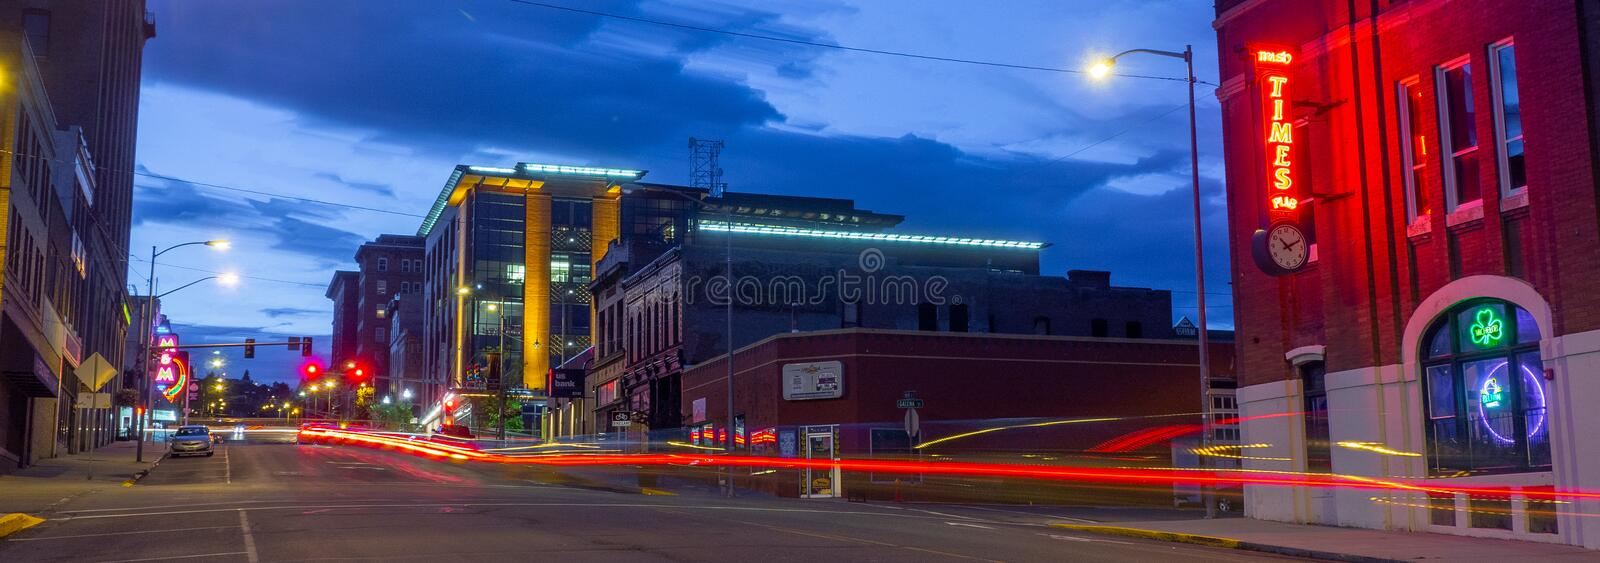 Main Street at Night, Historic Uptown Butte. stock photography